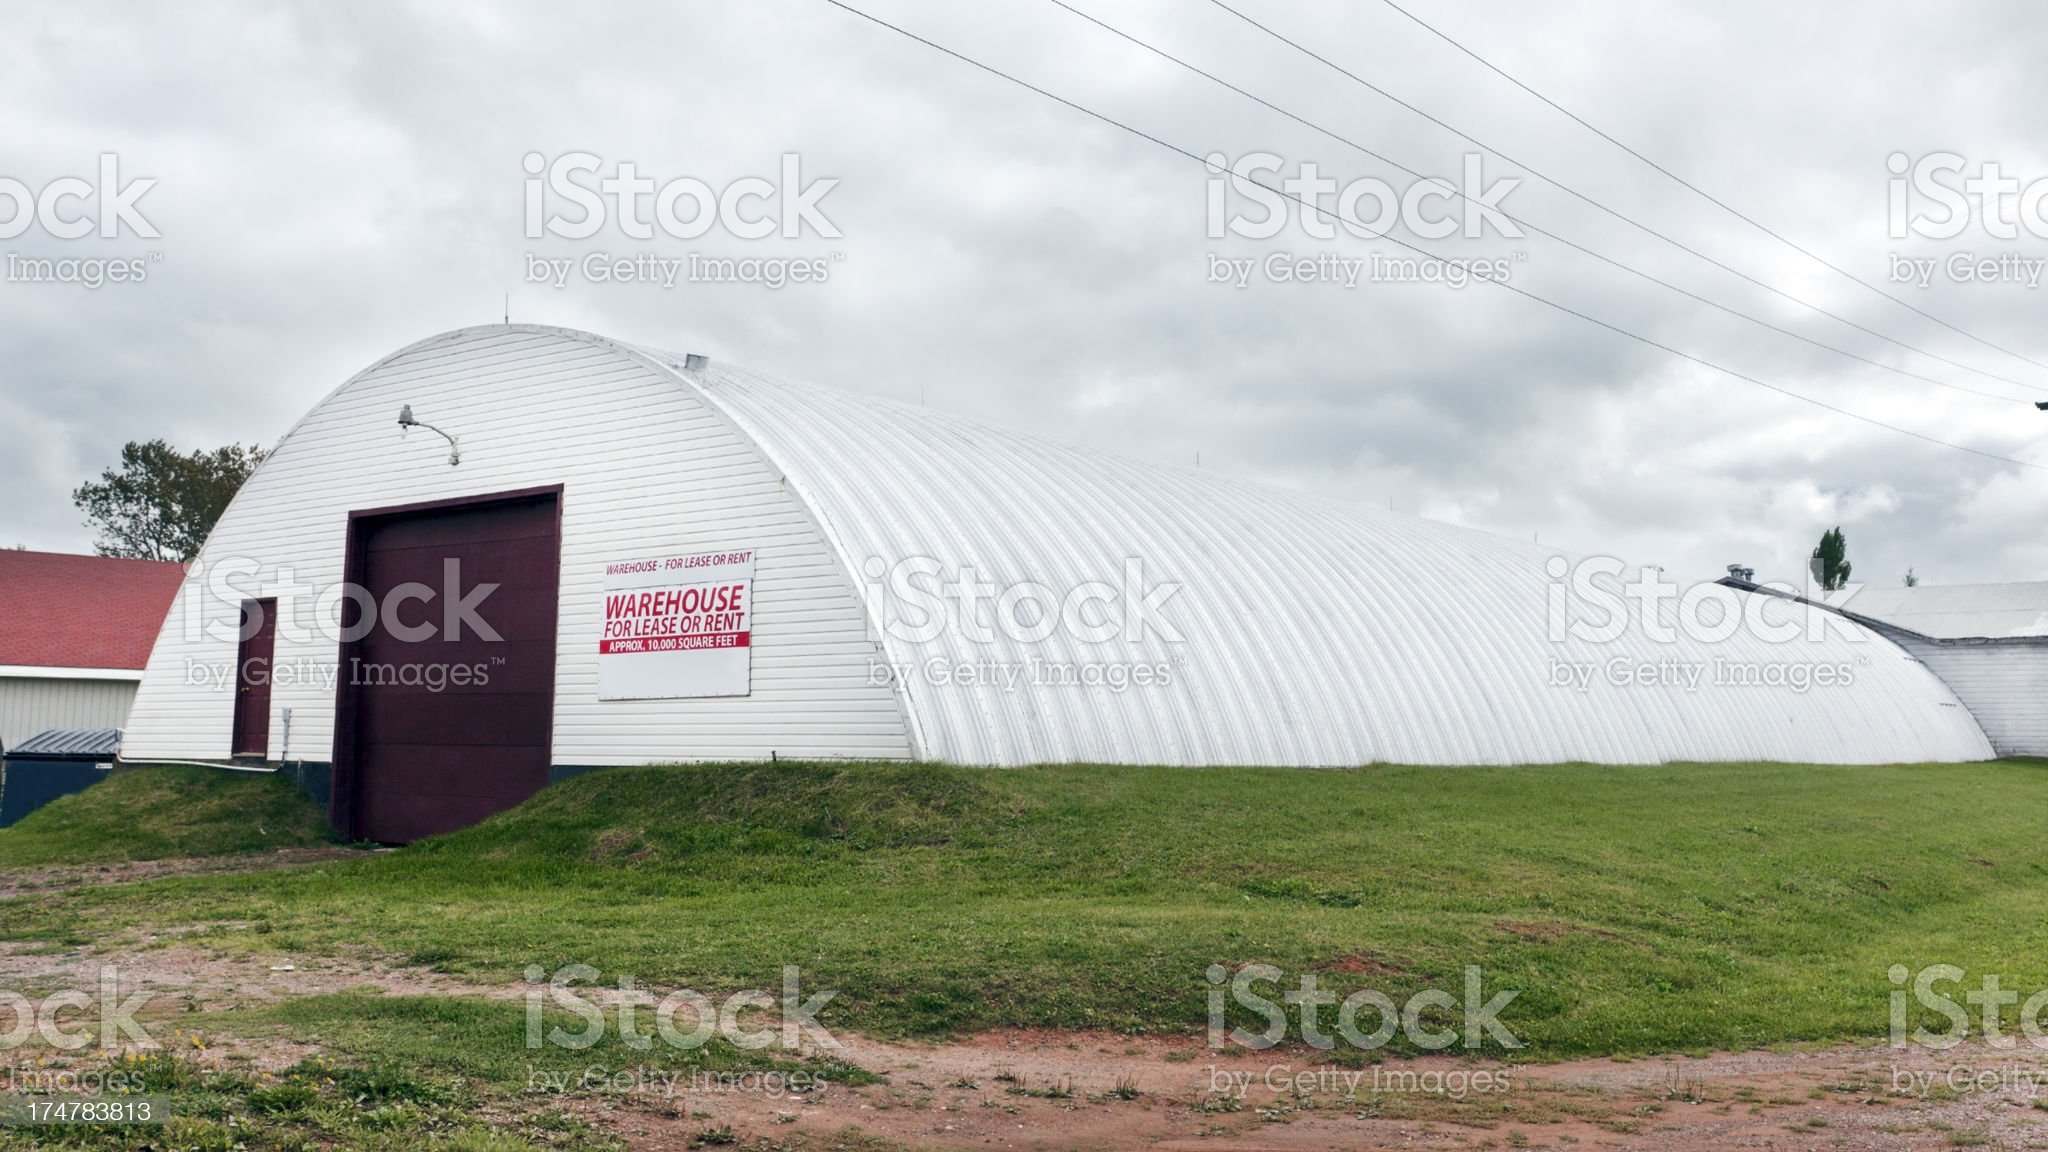 Warehouse for Lease royalty-free stock photo